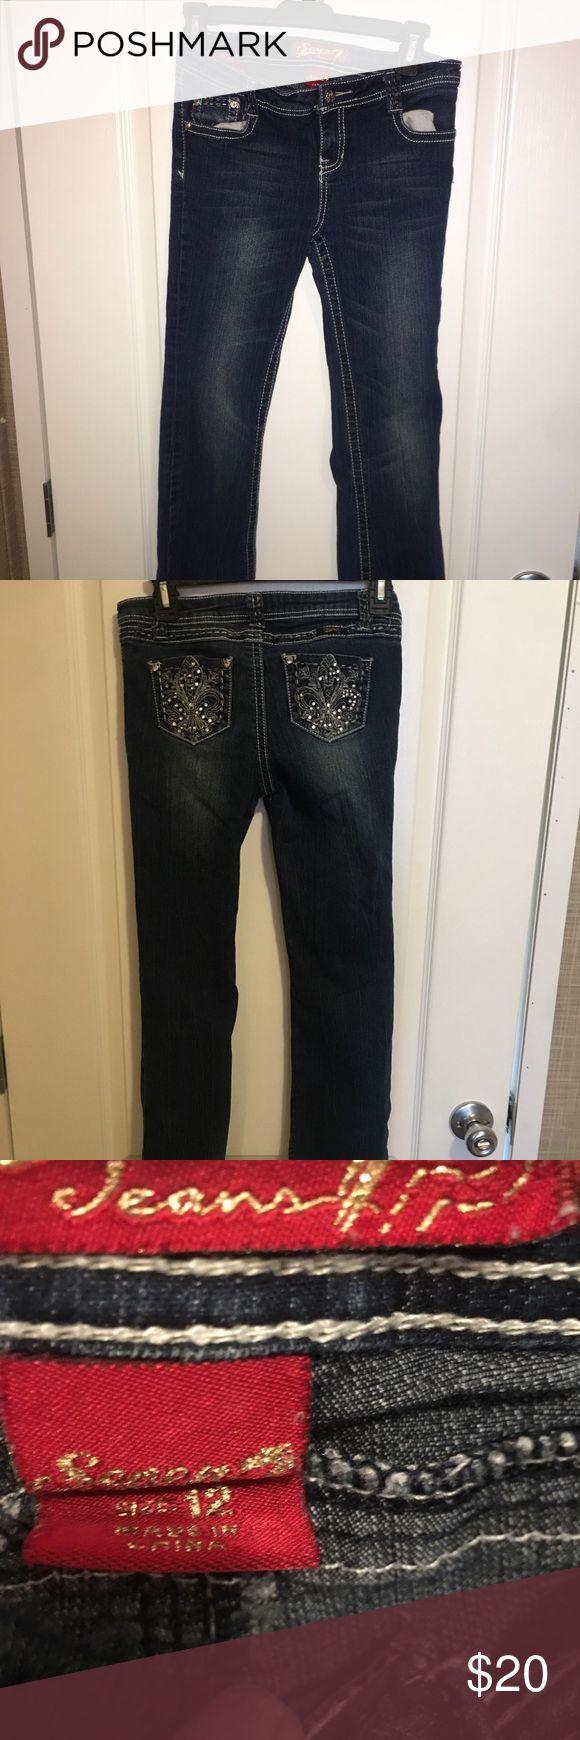 Girls size12 seven jean Seven jeans girls size 12 70 cotton 21polyester 7# rayon#colorful